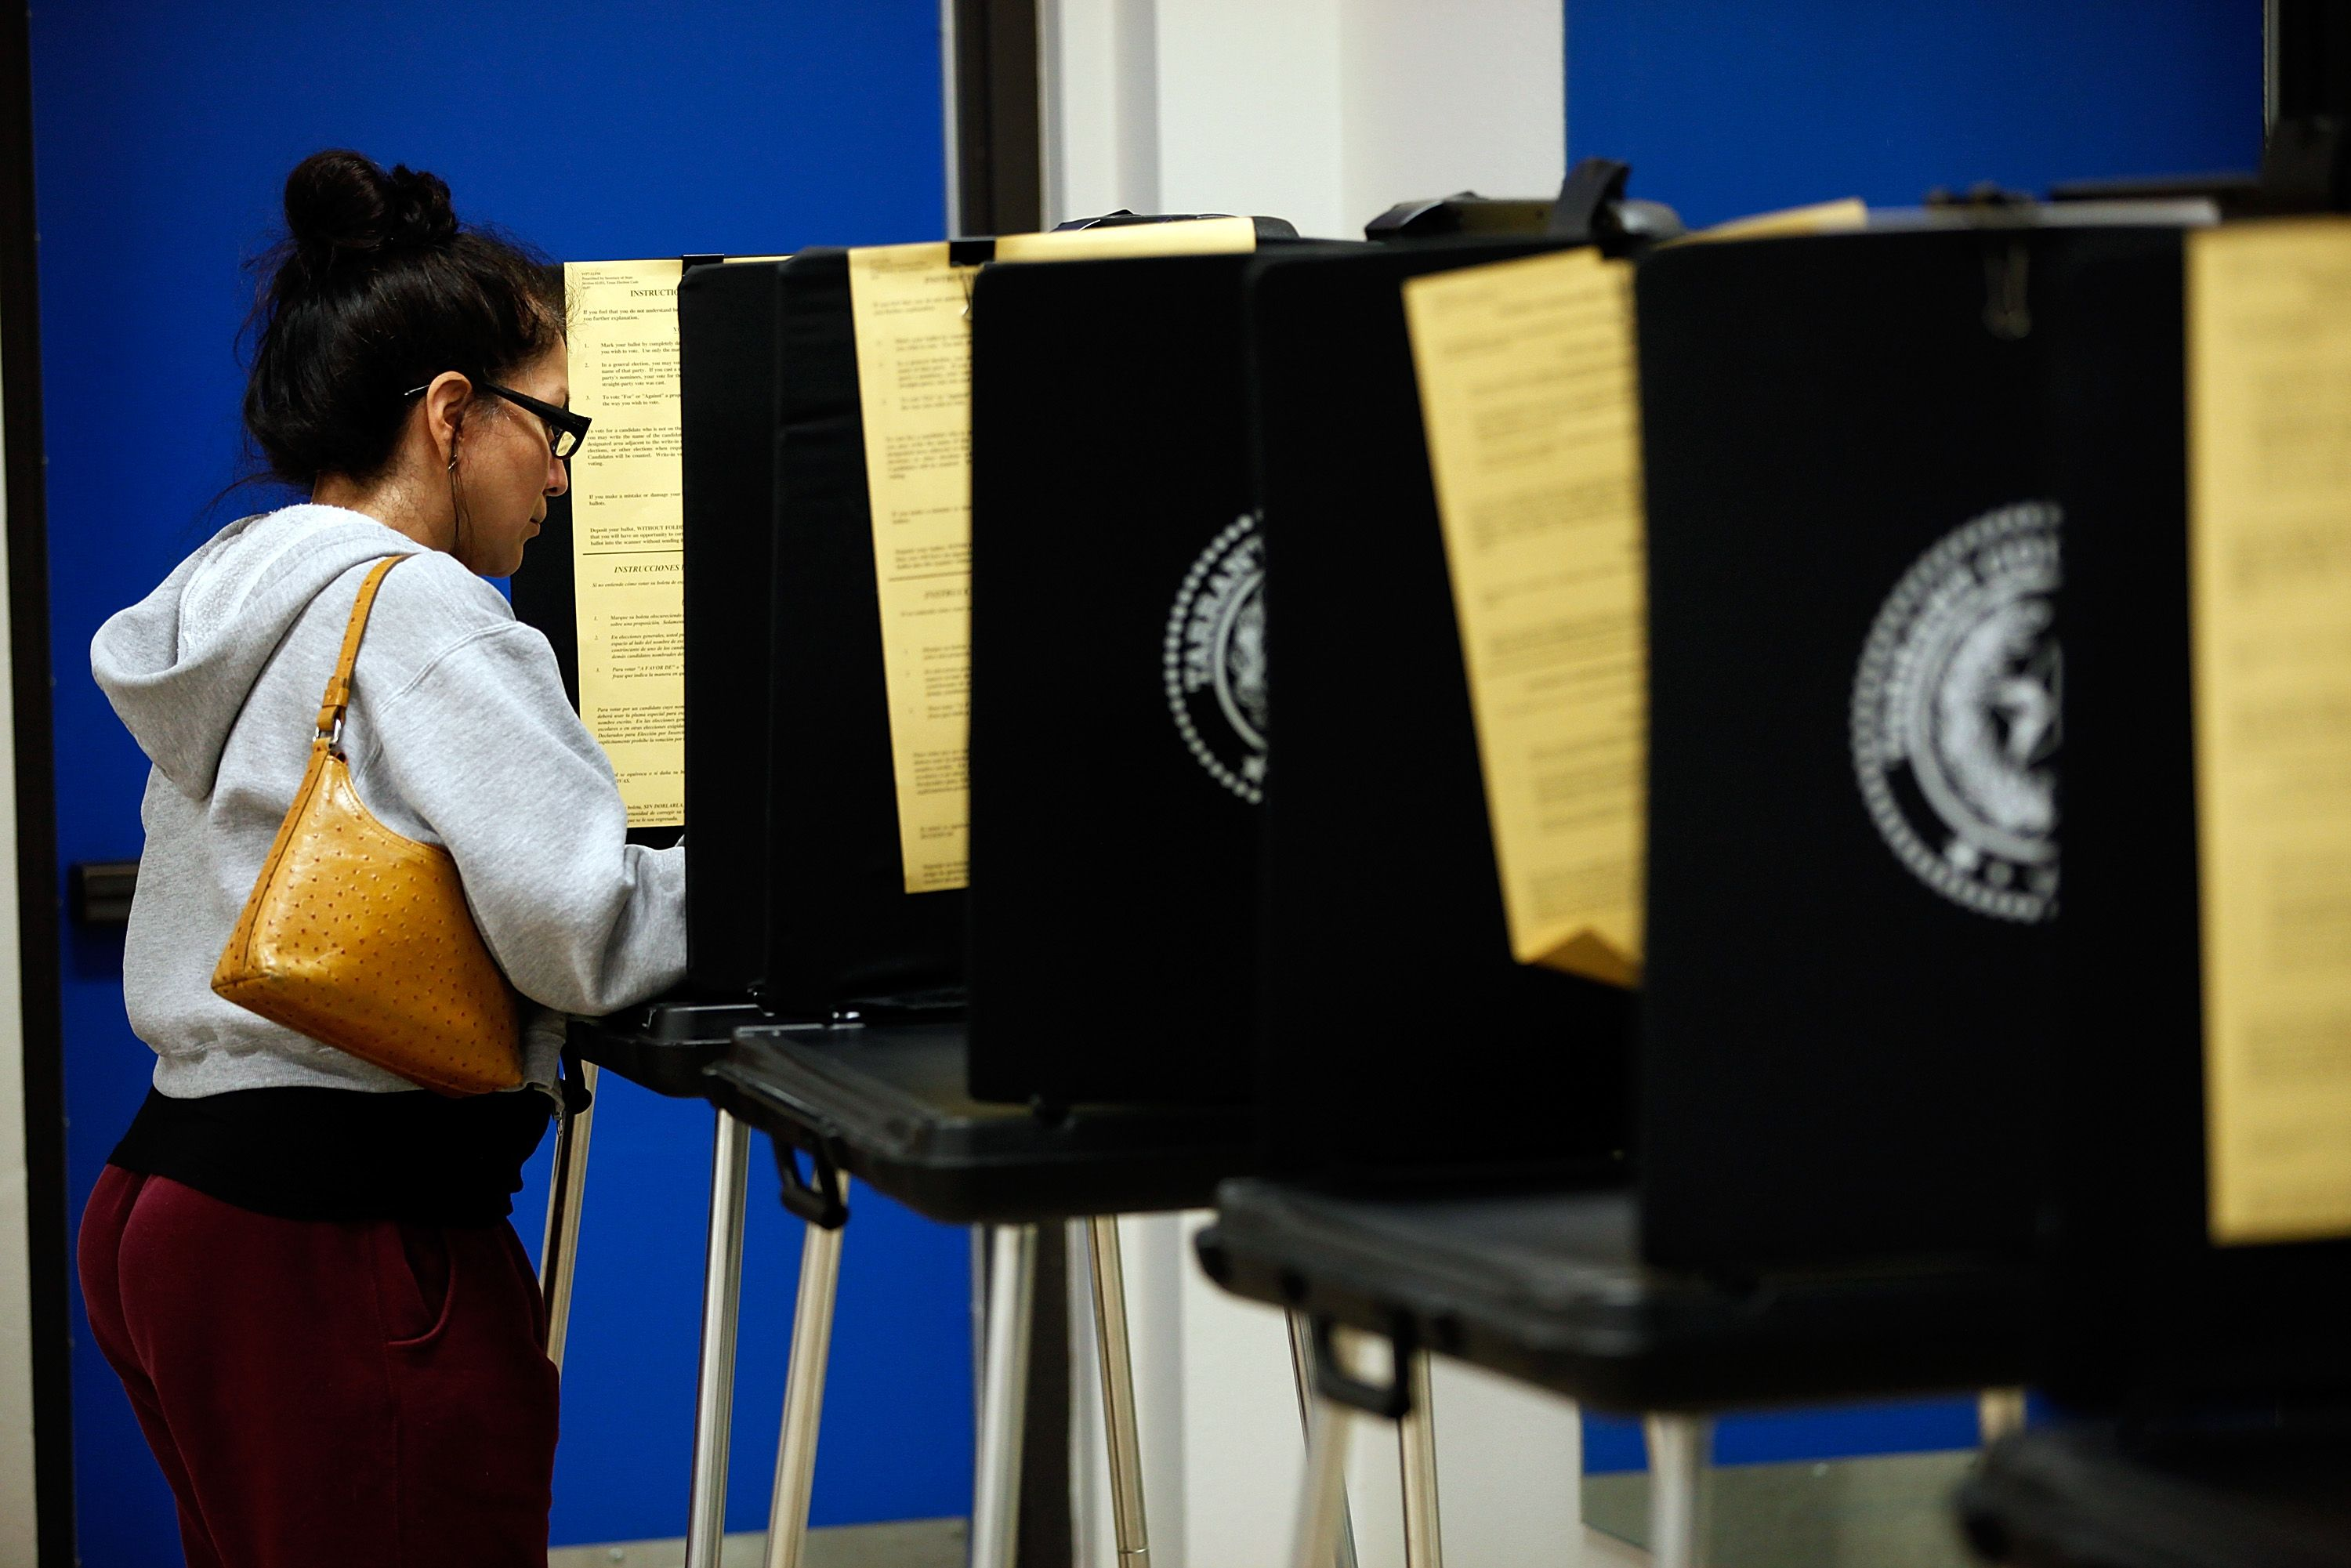 A voter uses an electronic voting machine.